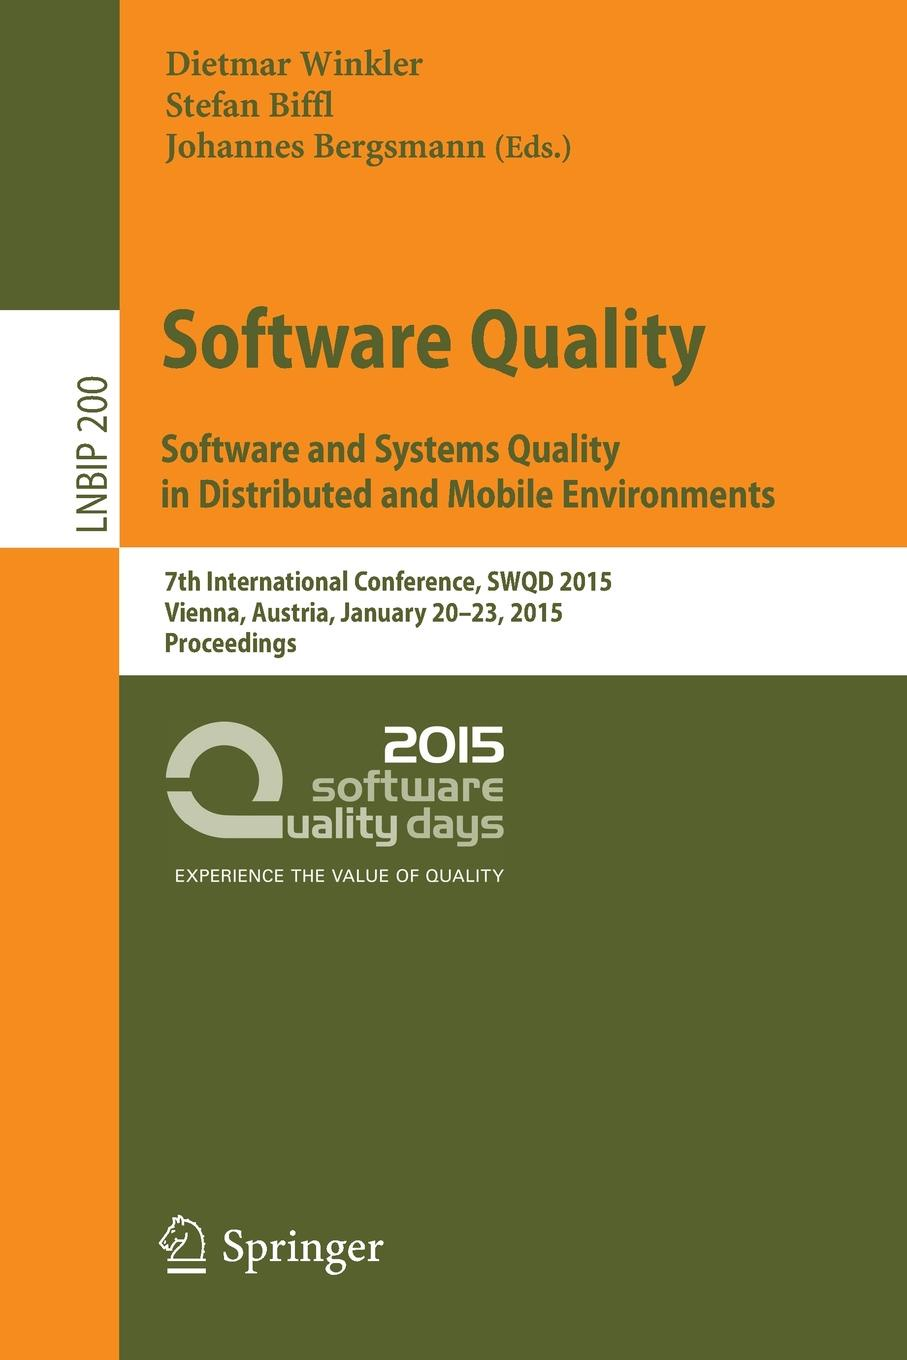 Software Quality. and Systems Quality in Distributed Mobile Environments. 7th International Conference, SWQD 2015, Vienna, Austria, January 20-23, Proceedings